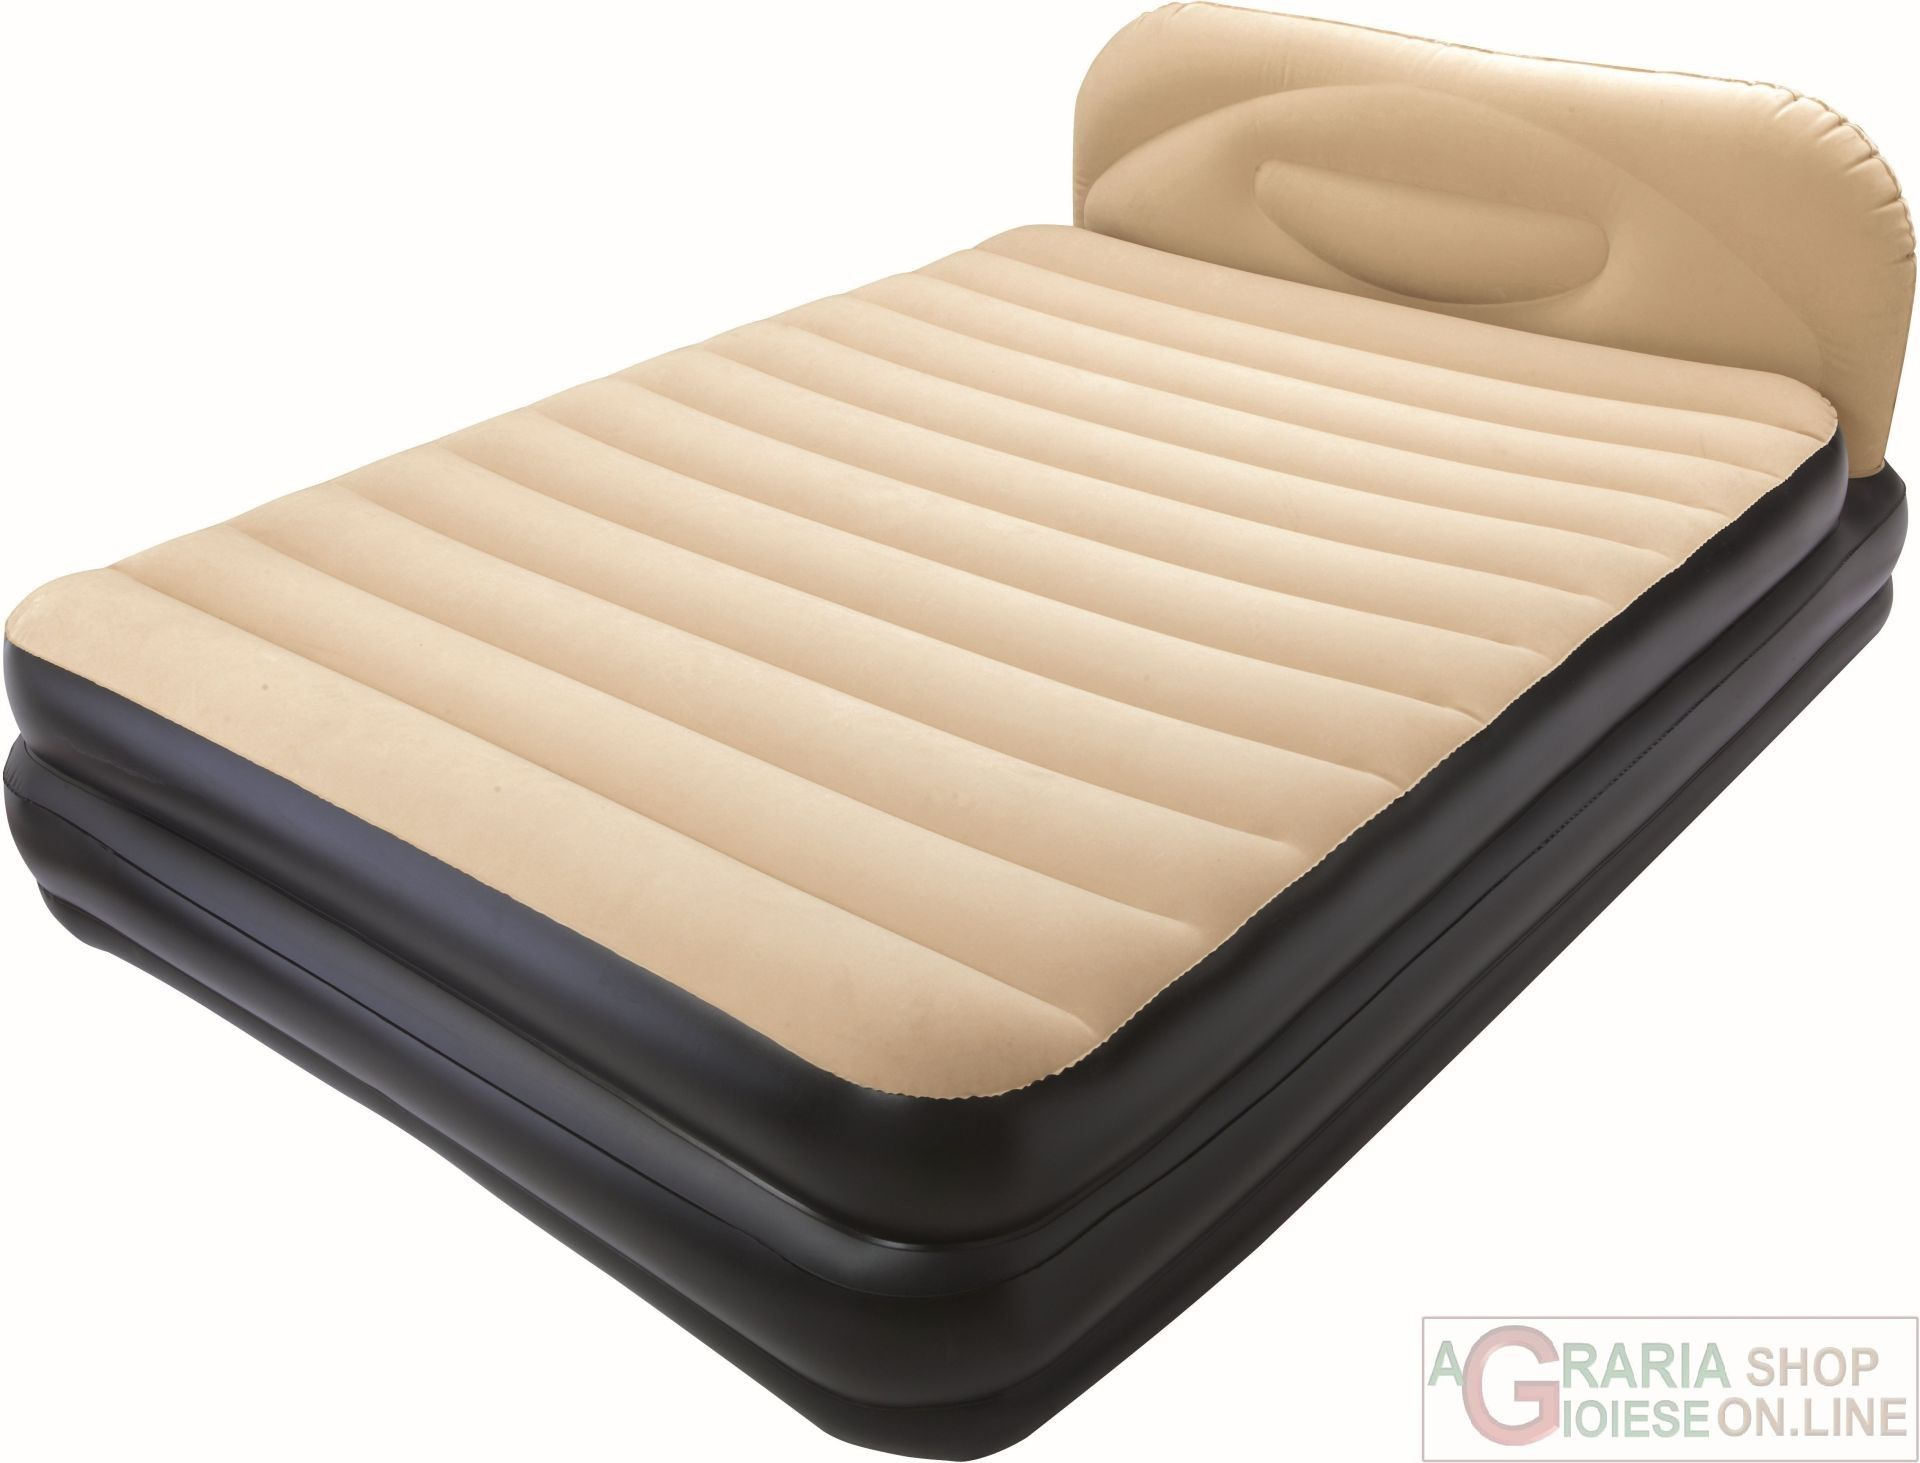 Materasso Letto Gonfiabile Airbed.Bestway Airbed Soft Back Elevated Letto Matrimoniale Doppio